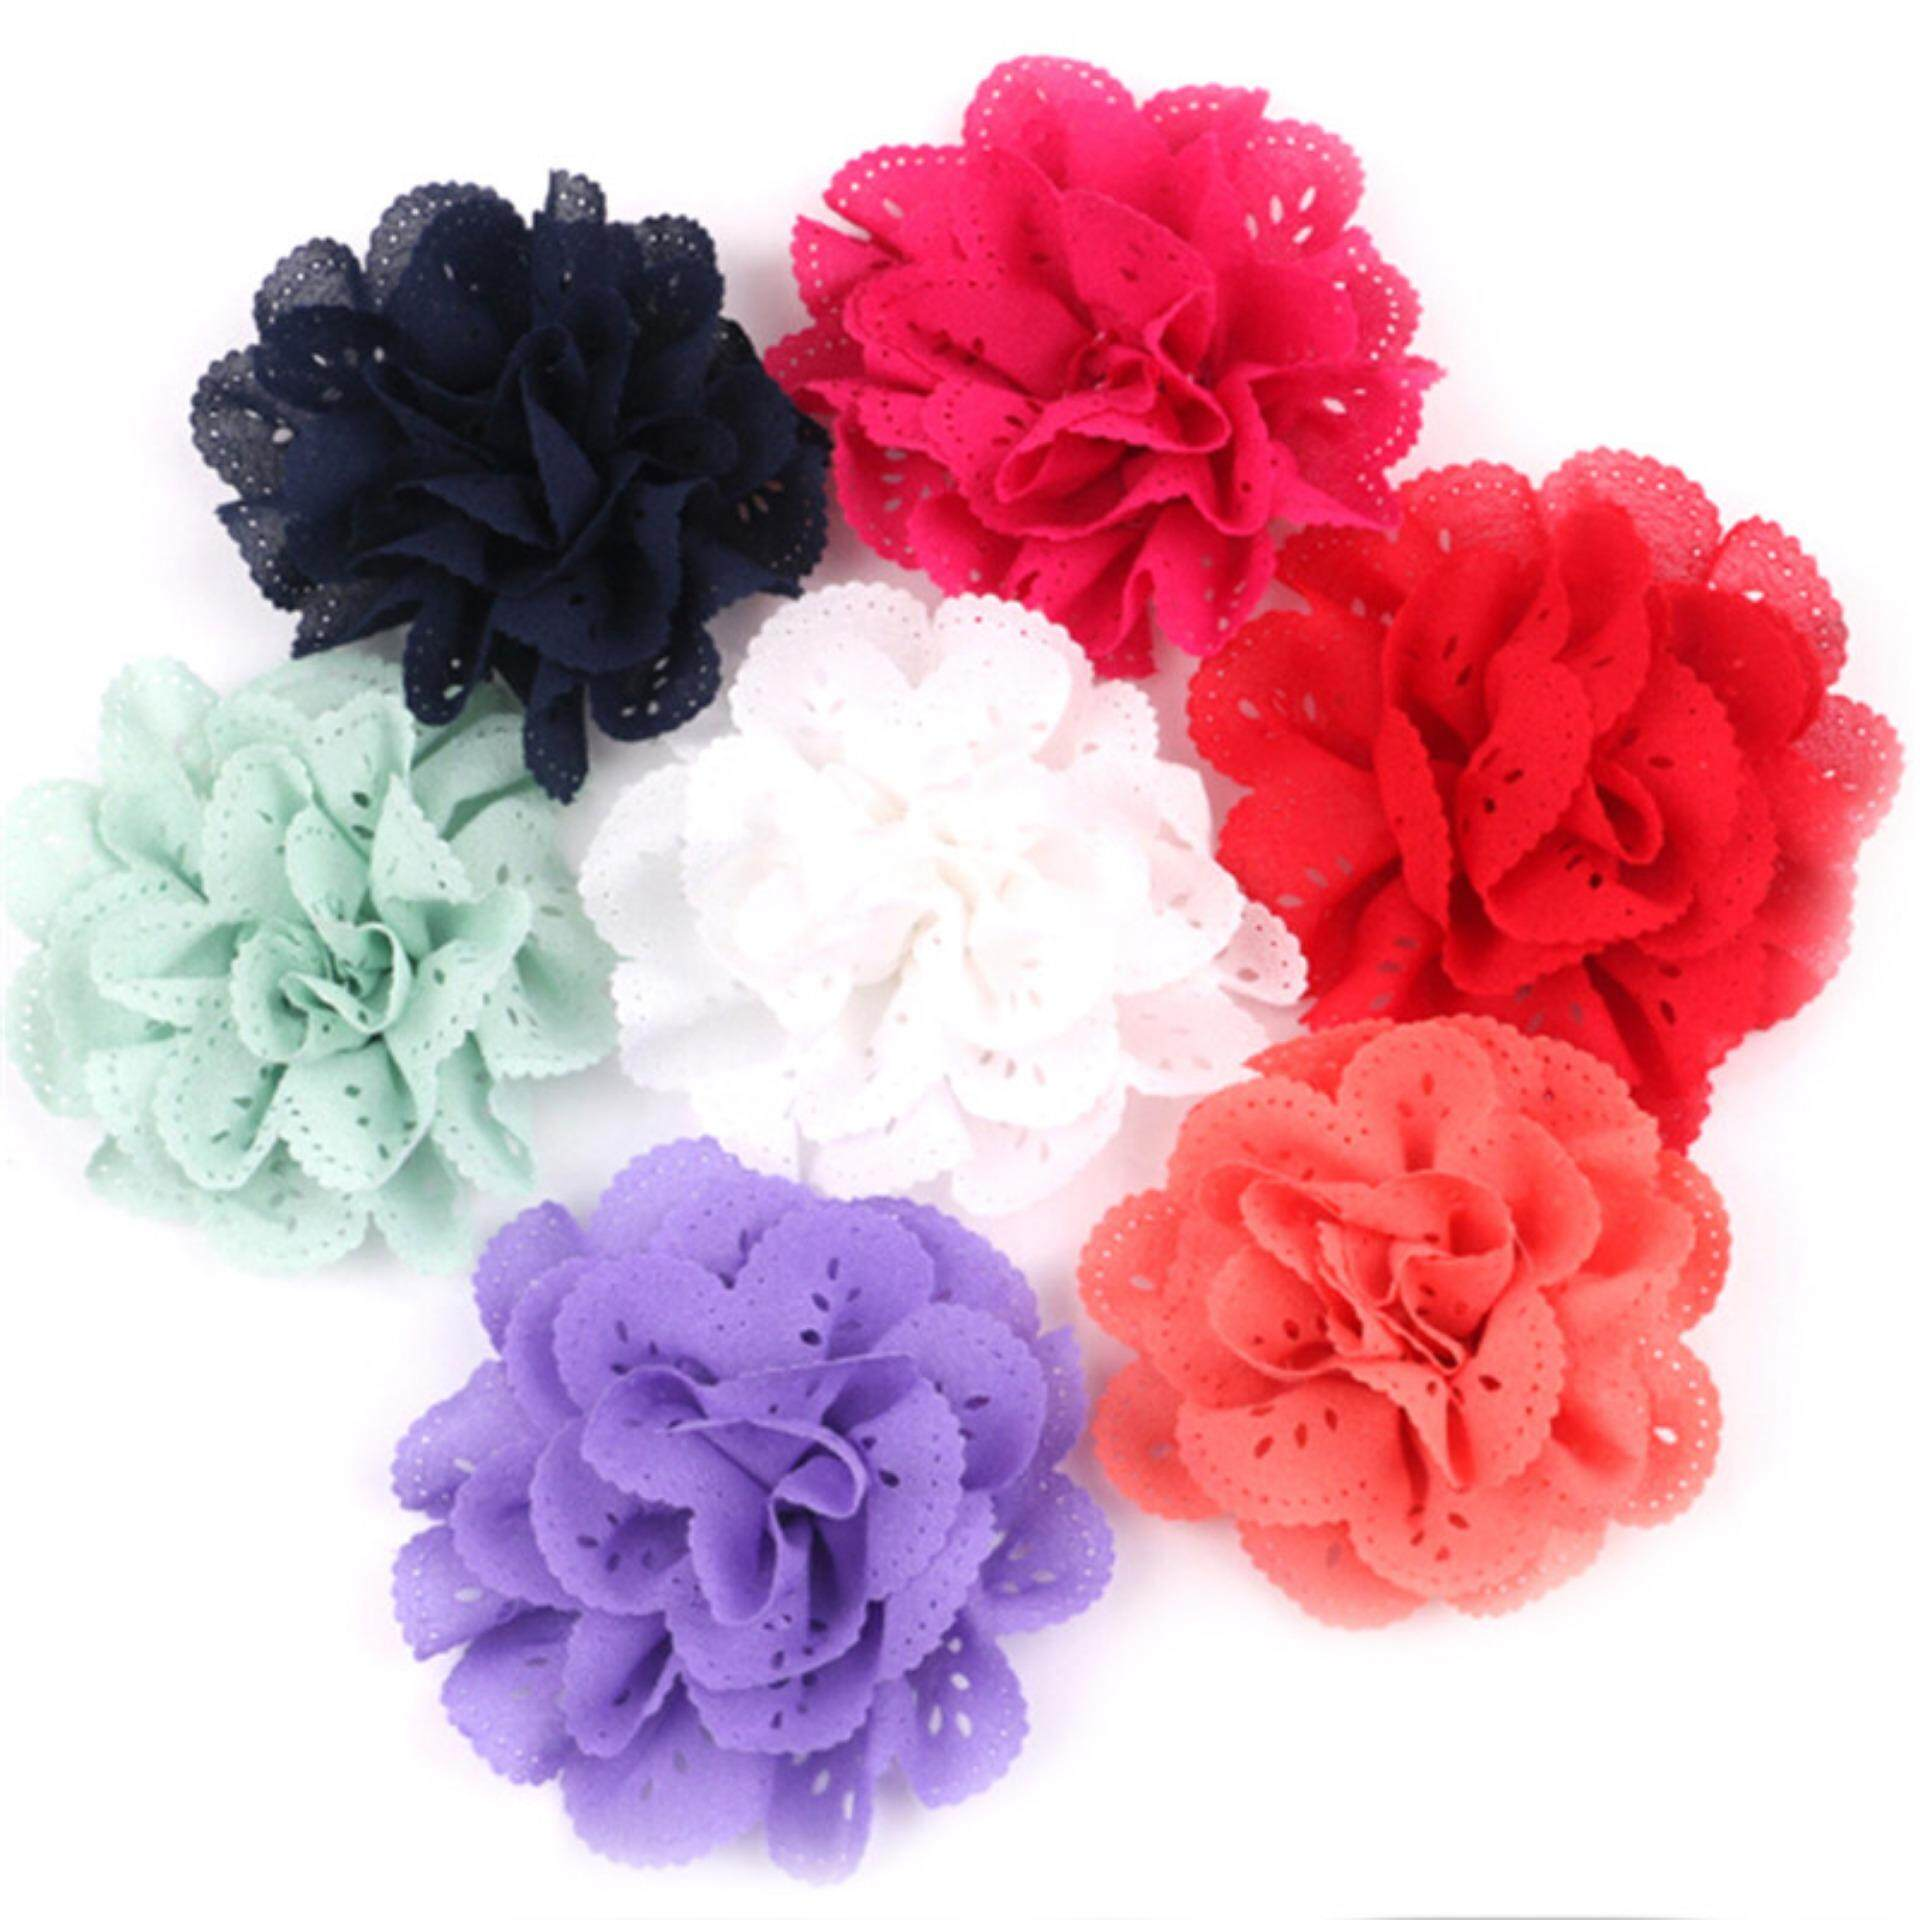 Girl's Hair Accessories Korea Fabric Tie Knot Hair Ands Embroidery Hairband Flower Crown Headbands For Girls Hair Bows Hair Accessories D Apparel Accessories